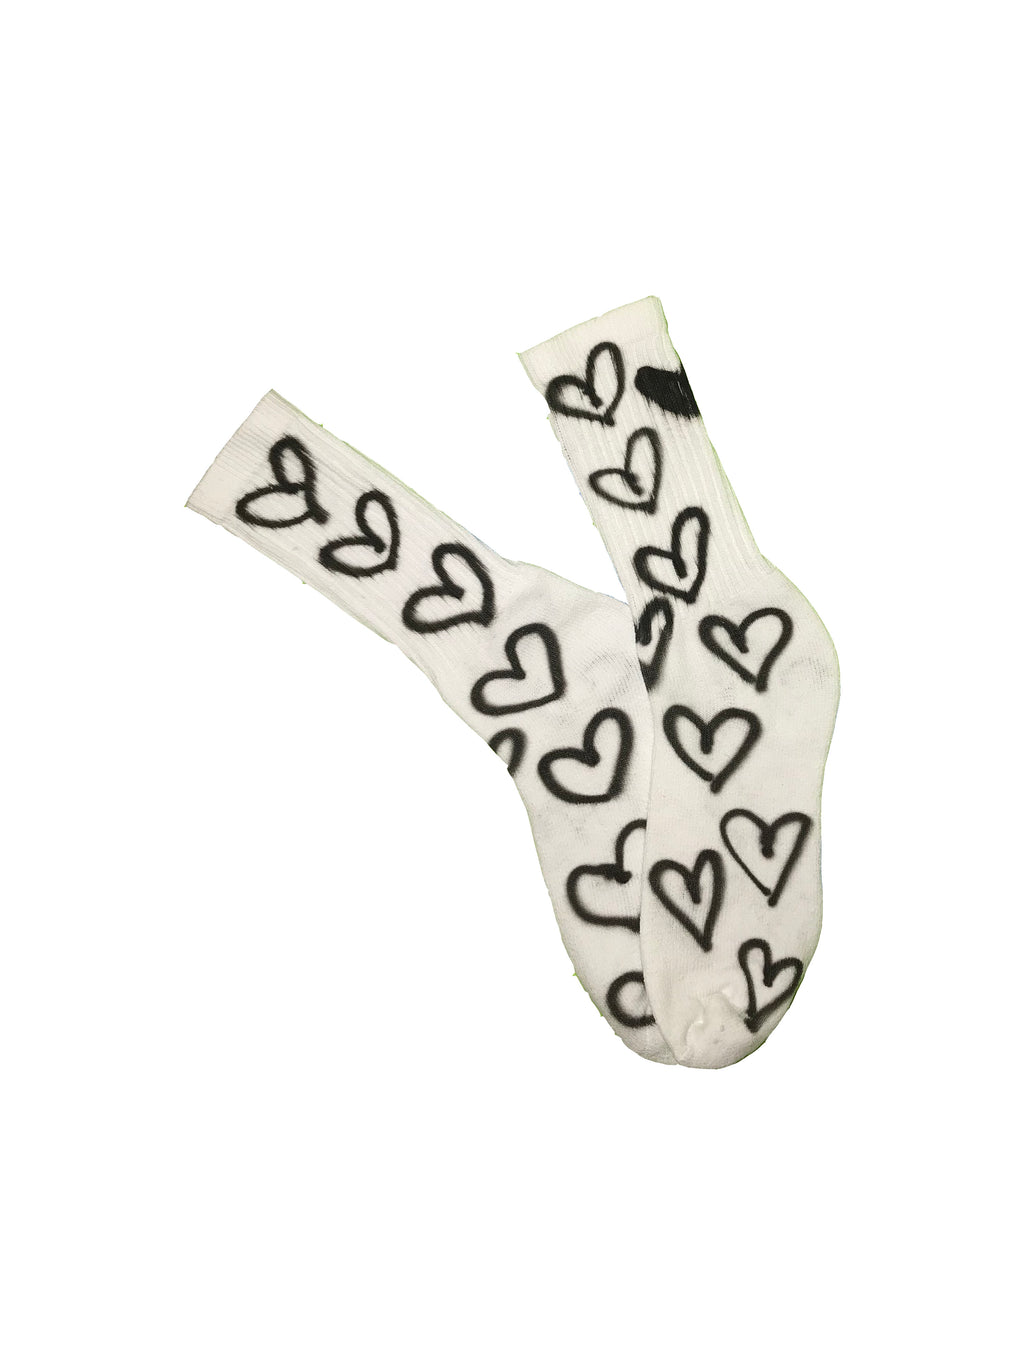 Alexa Stark, airbrush, socks, heart socks, kathleen, los angeles, shop kathleen